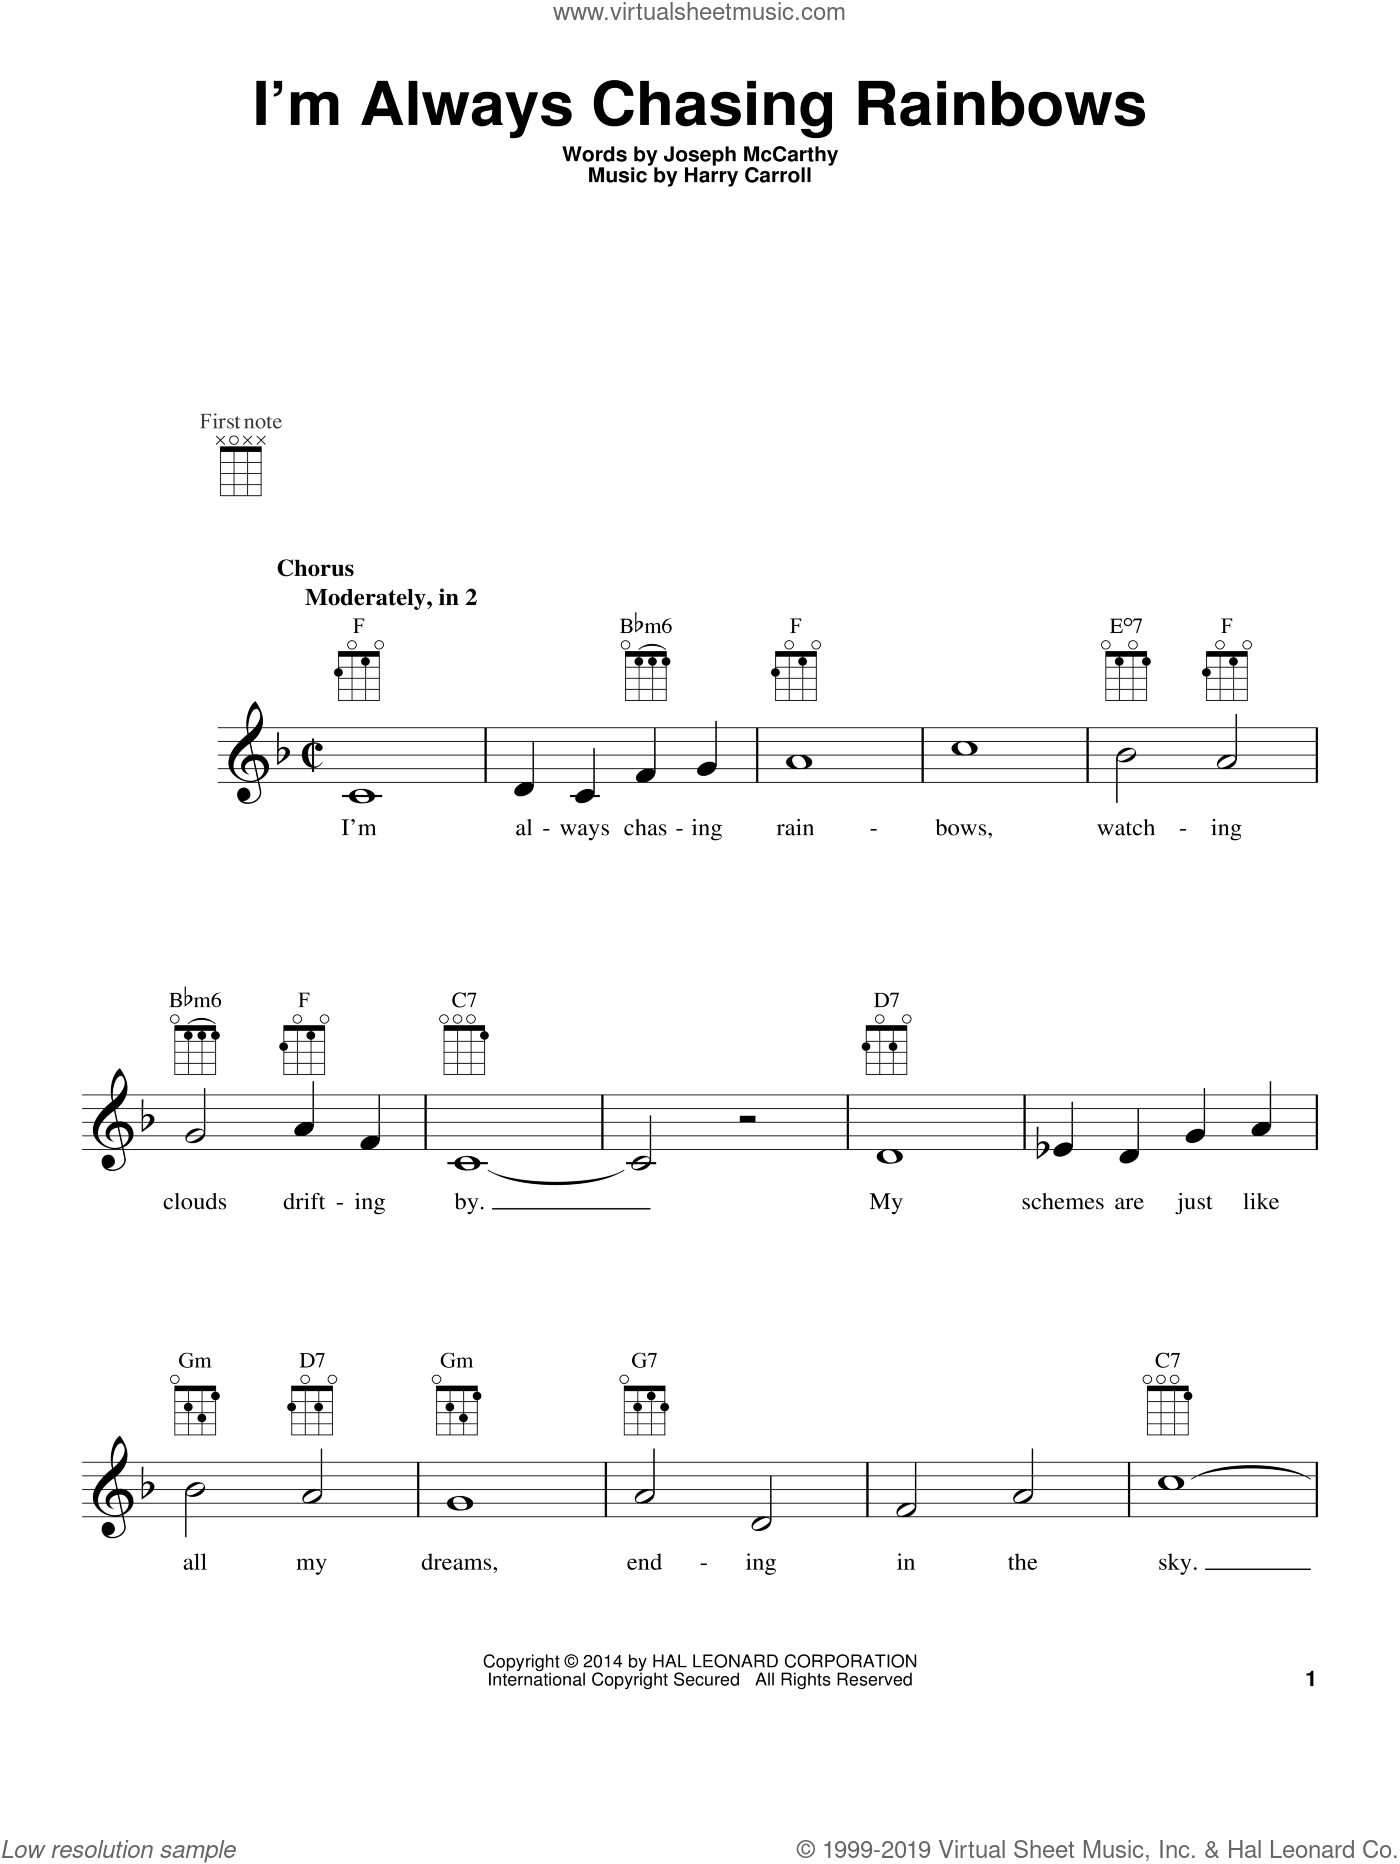 I'm Always Chasing Rainbows sheet music for ukulele by Harry Carroll and Joseph McCarthy, intermediate